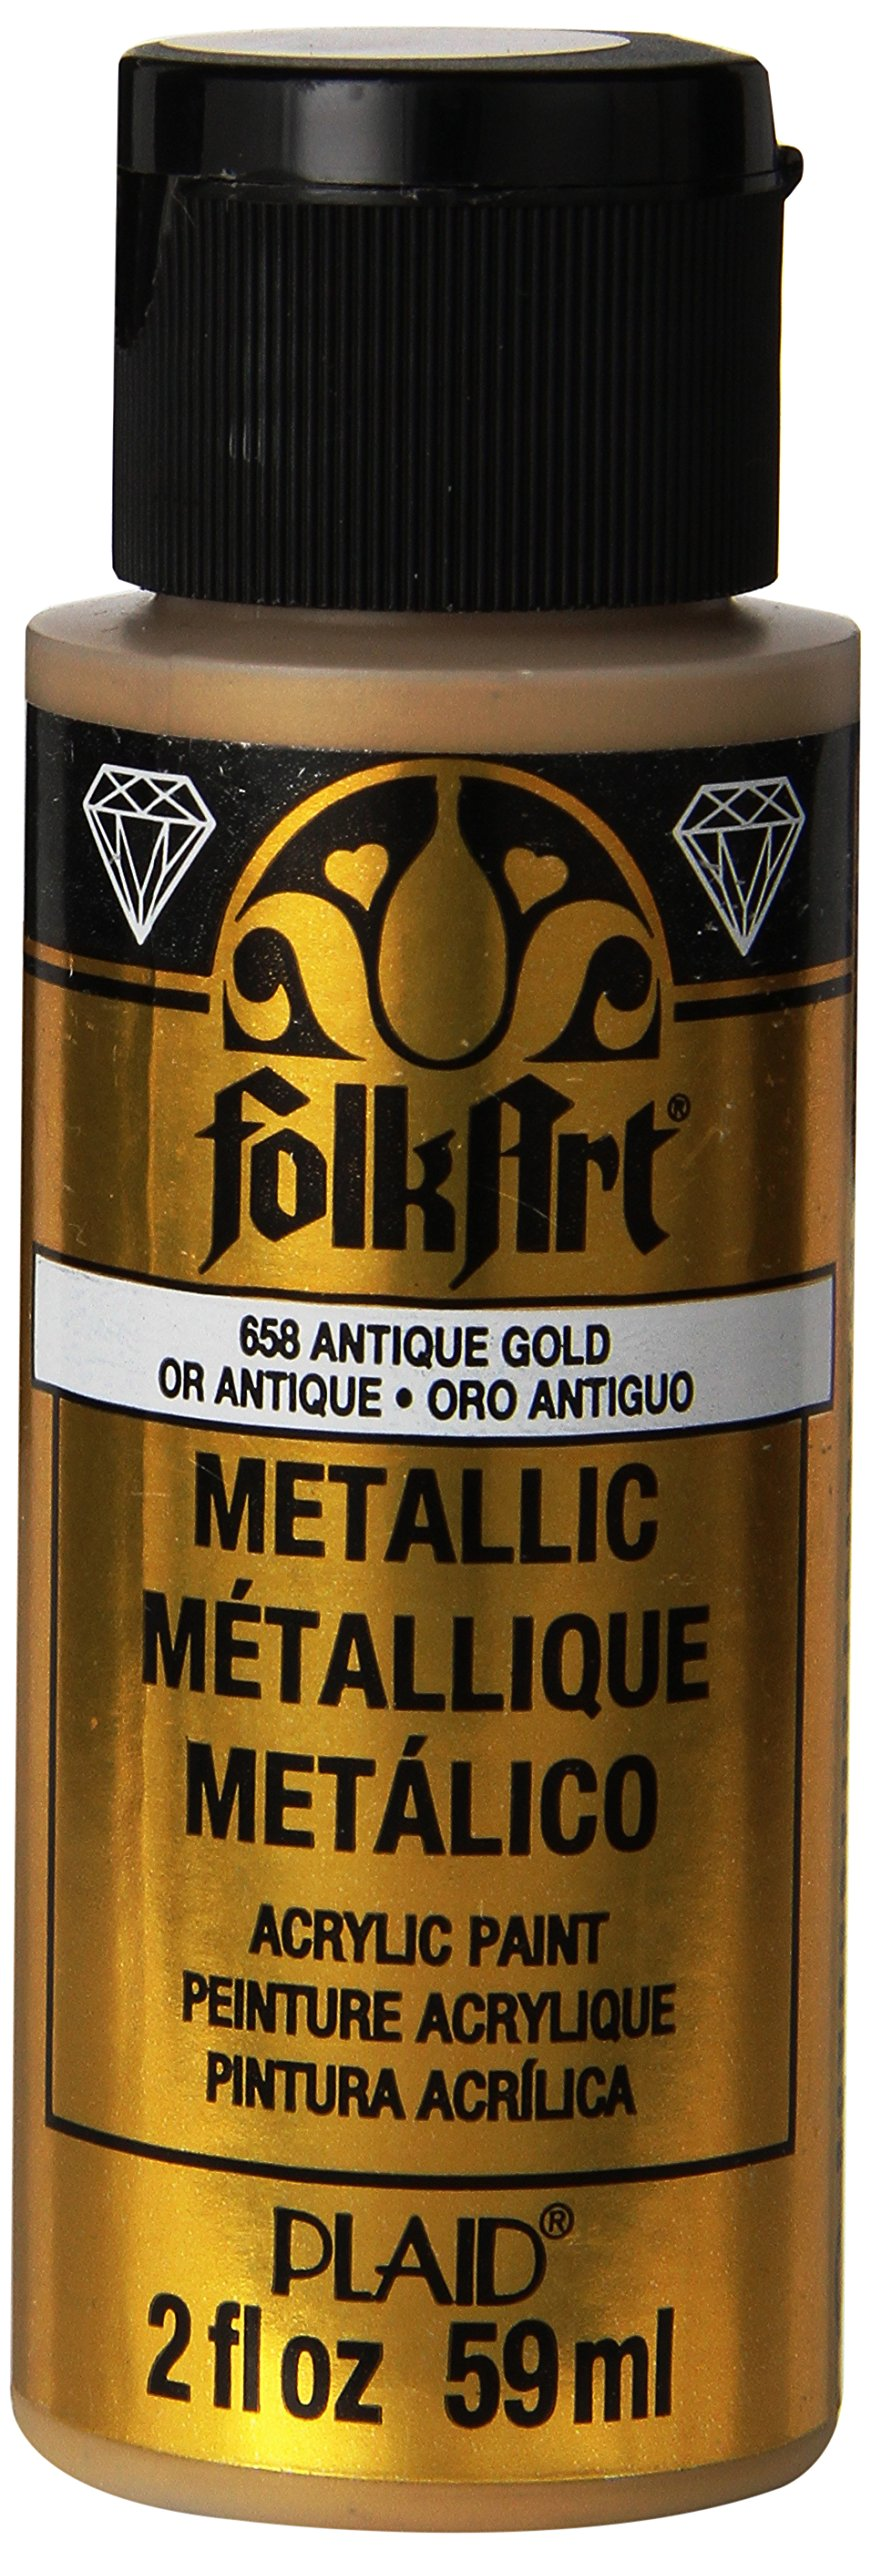 FolkArt Metallic Acrylic Paint in Assorted Colors (2 oz), 658, Antique Gold